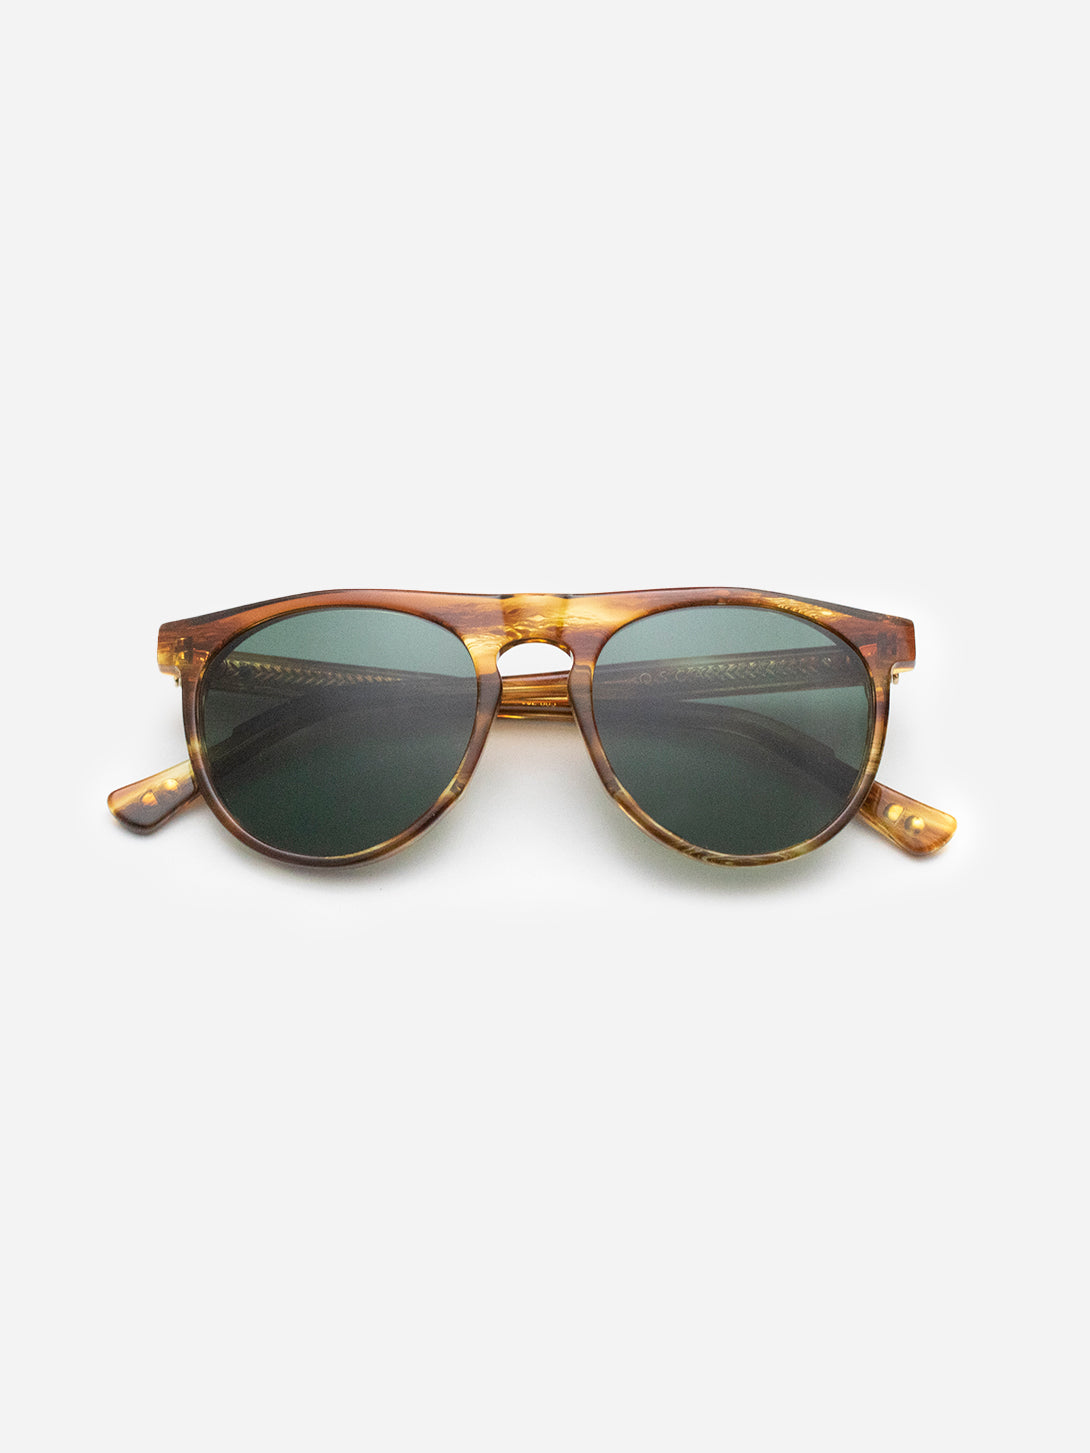 Havana Olive Otis Men's Oscar Deen sunglasses ONS Clothing